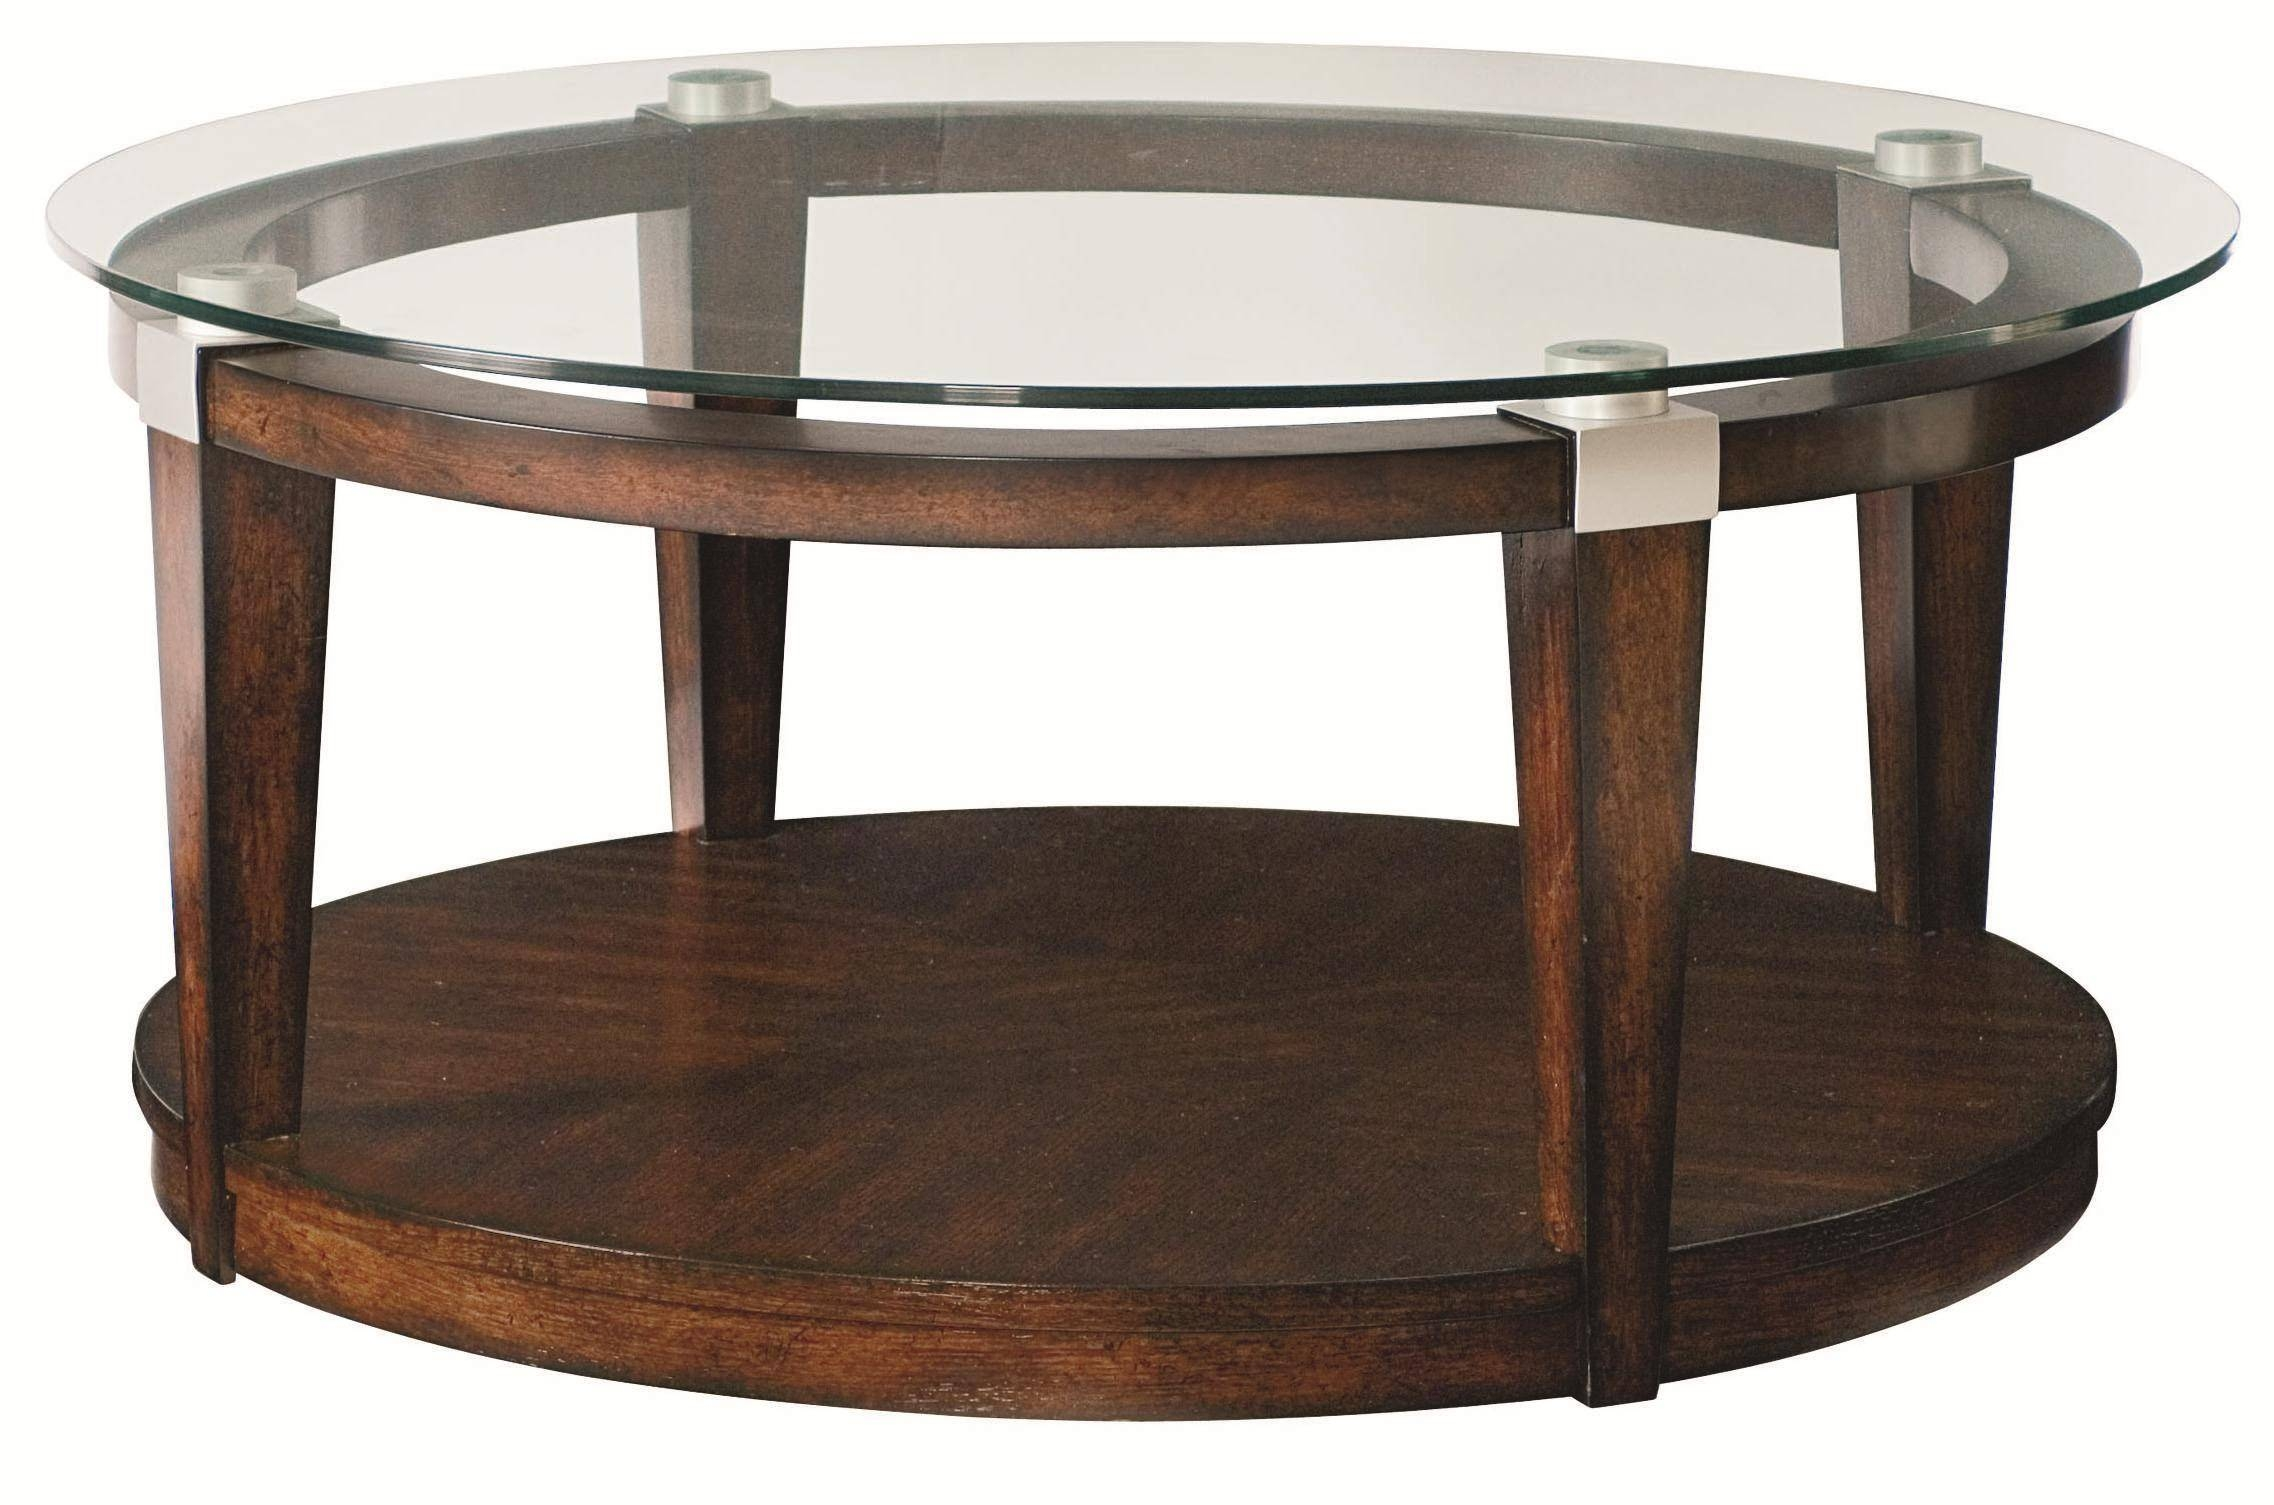 Round Coffee Table Design Idea Home – Small Round Coffee Table with Glass Circular Coffee Tables (Image 23 of 31)